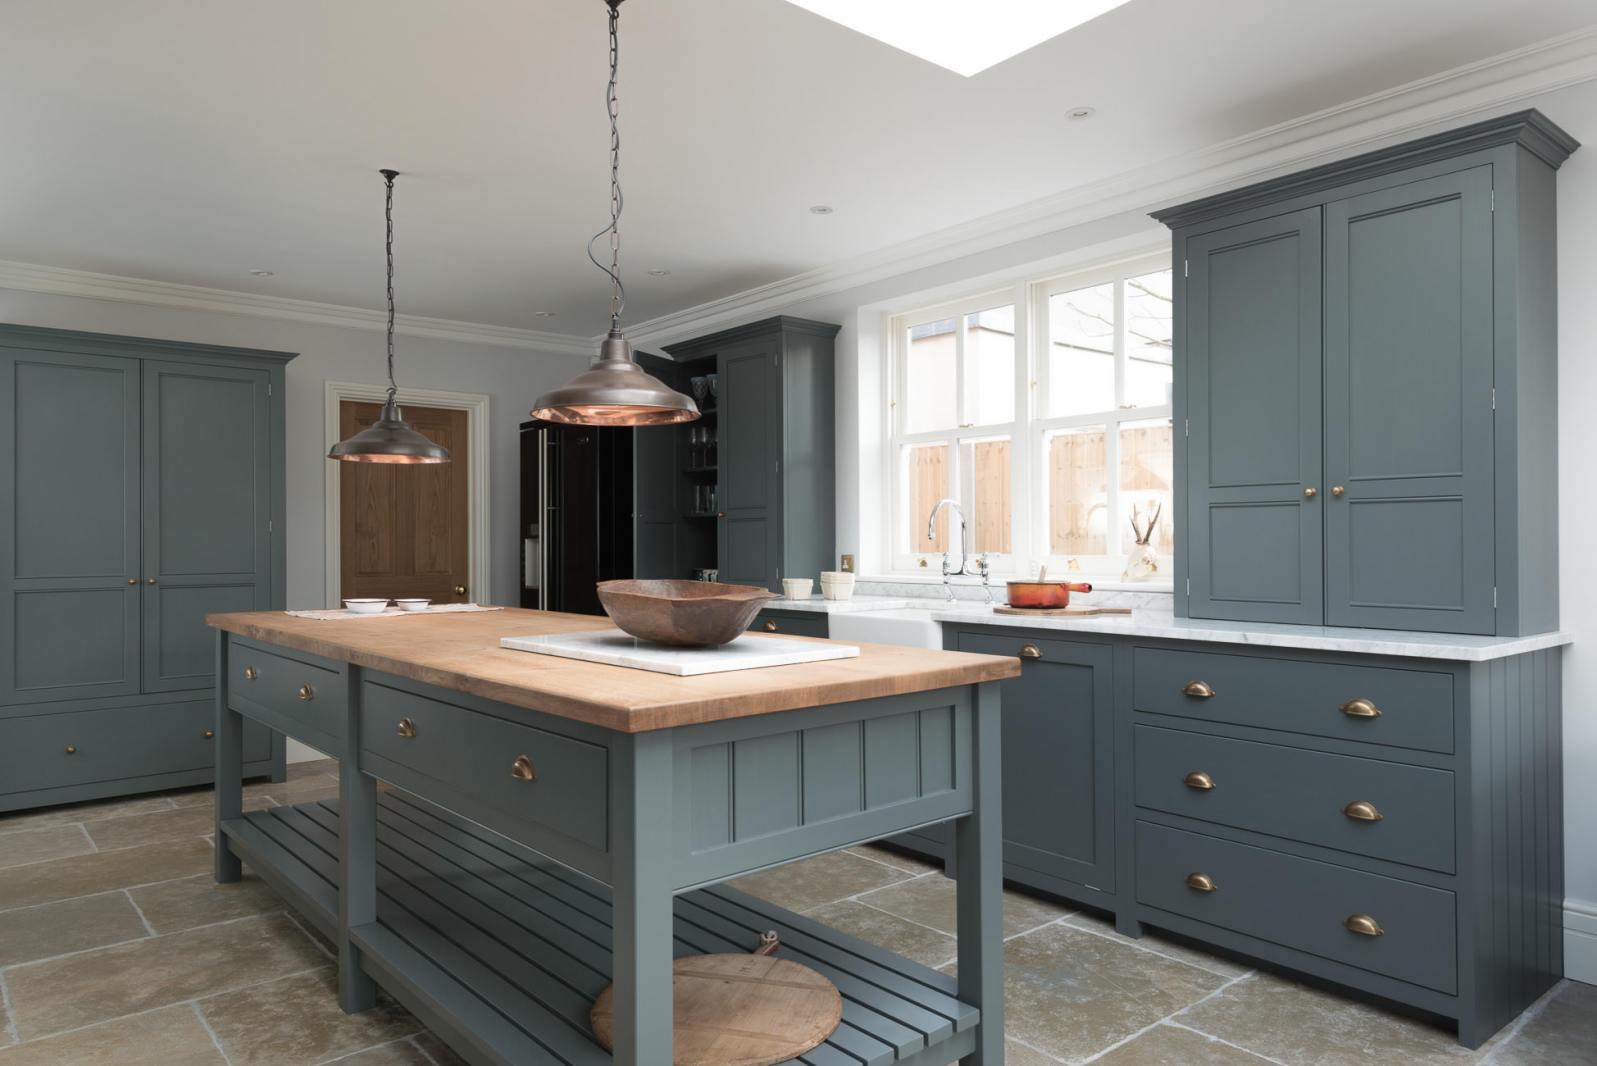 S Kitchen Cabinets Uk